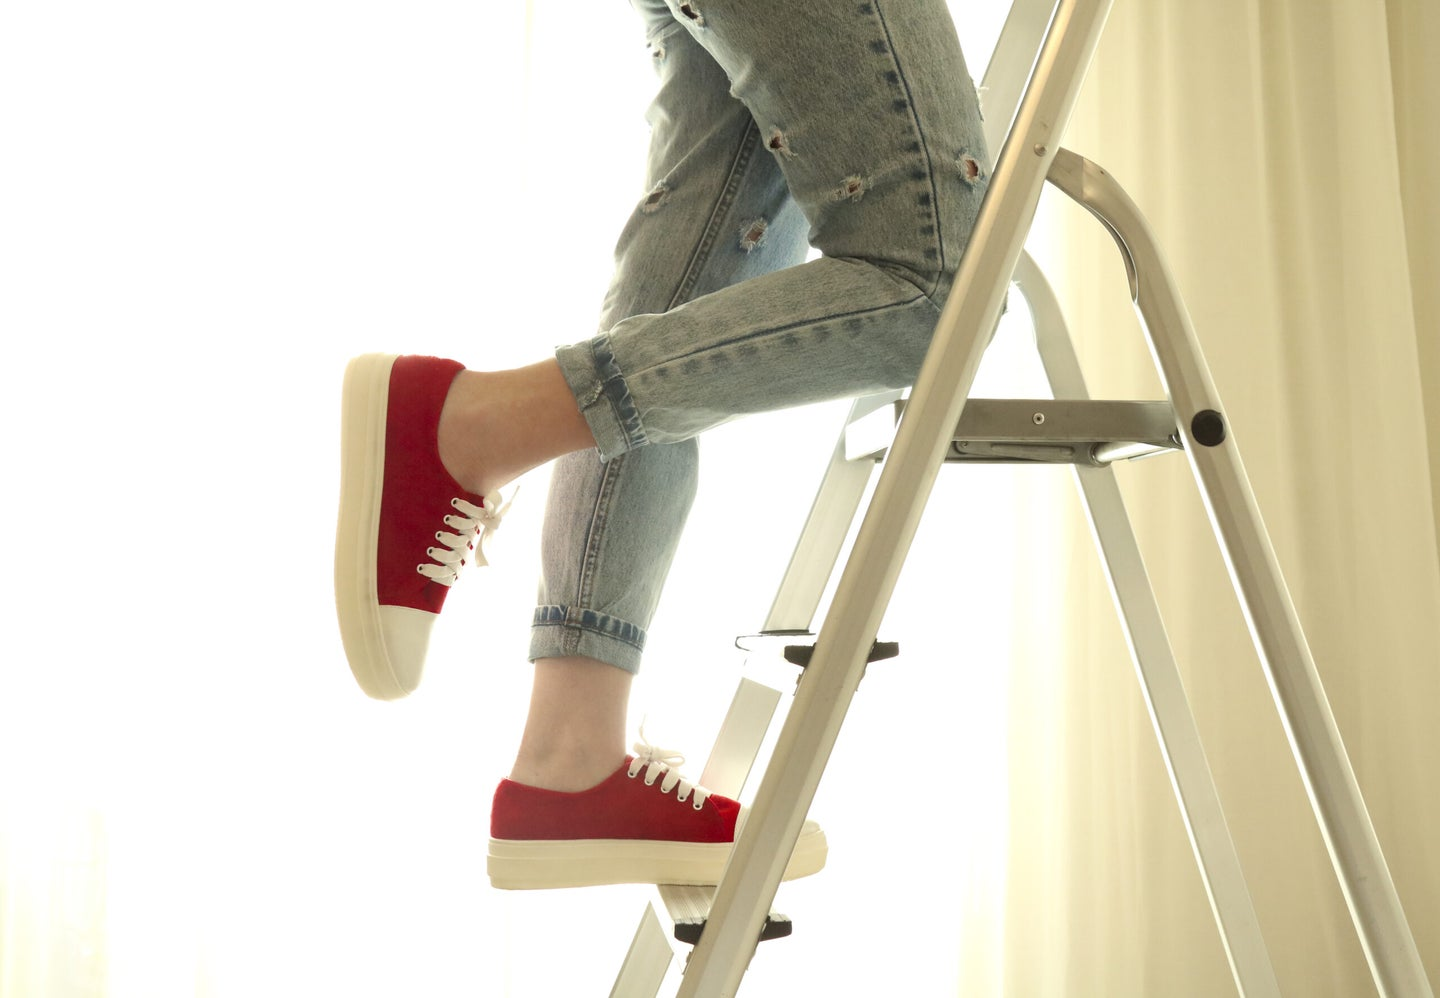 red shoes on a step ladder